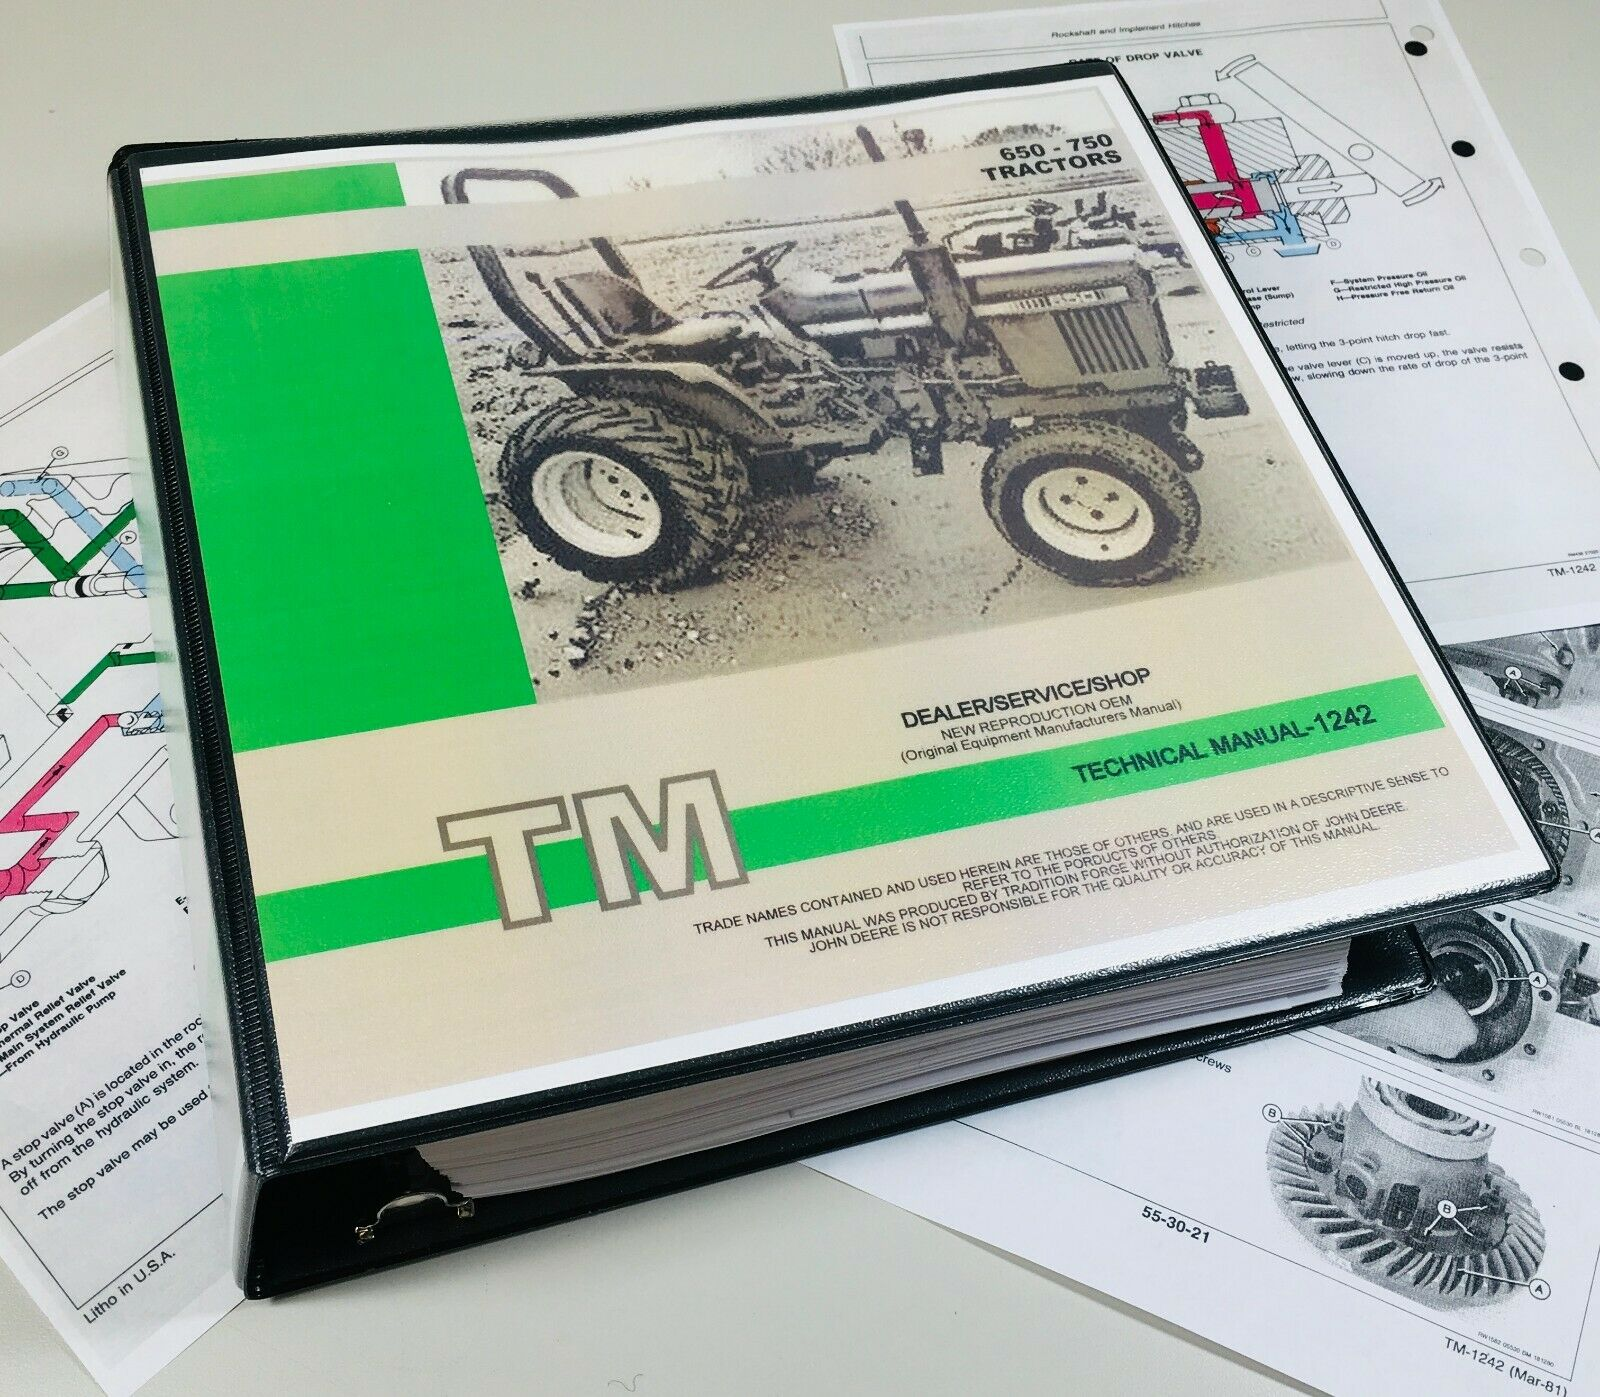 650 750 John Deere Technical Service Shop Repair Manual 800 pages! 1 of  12FREE Shipping ...